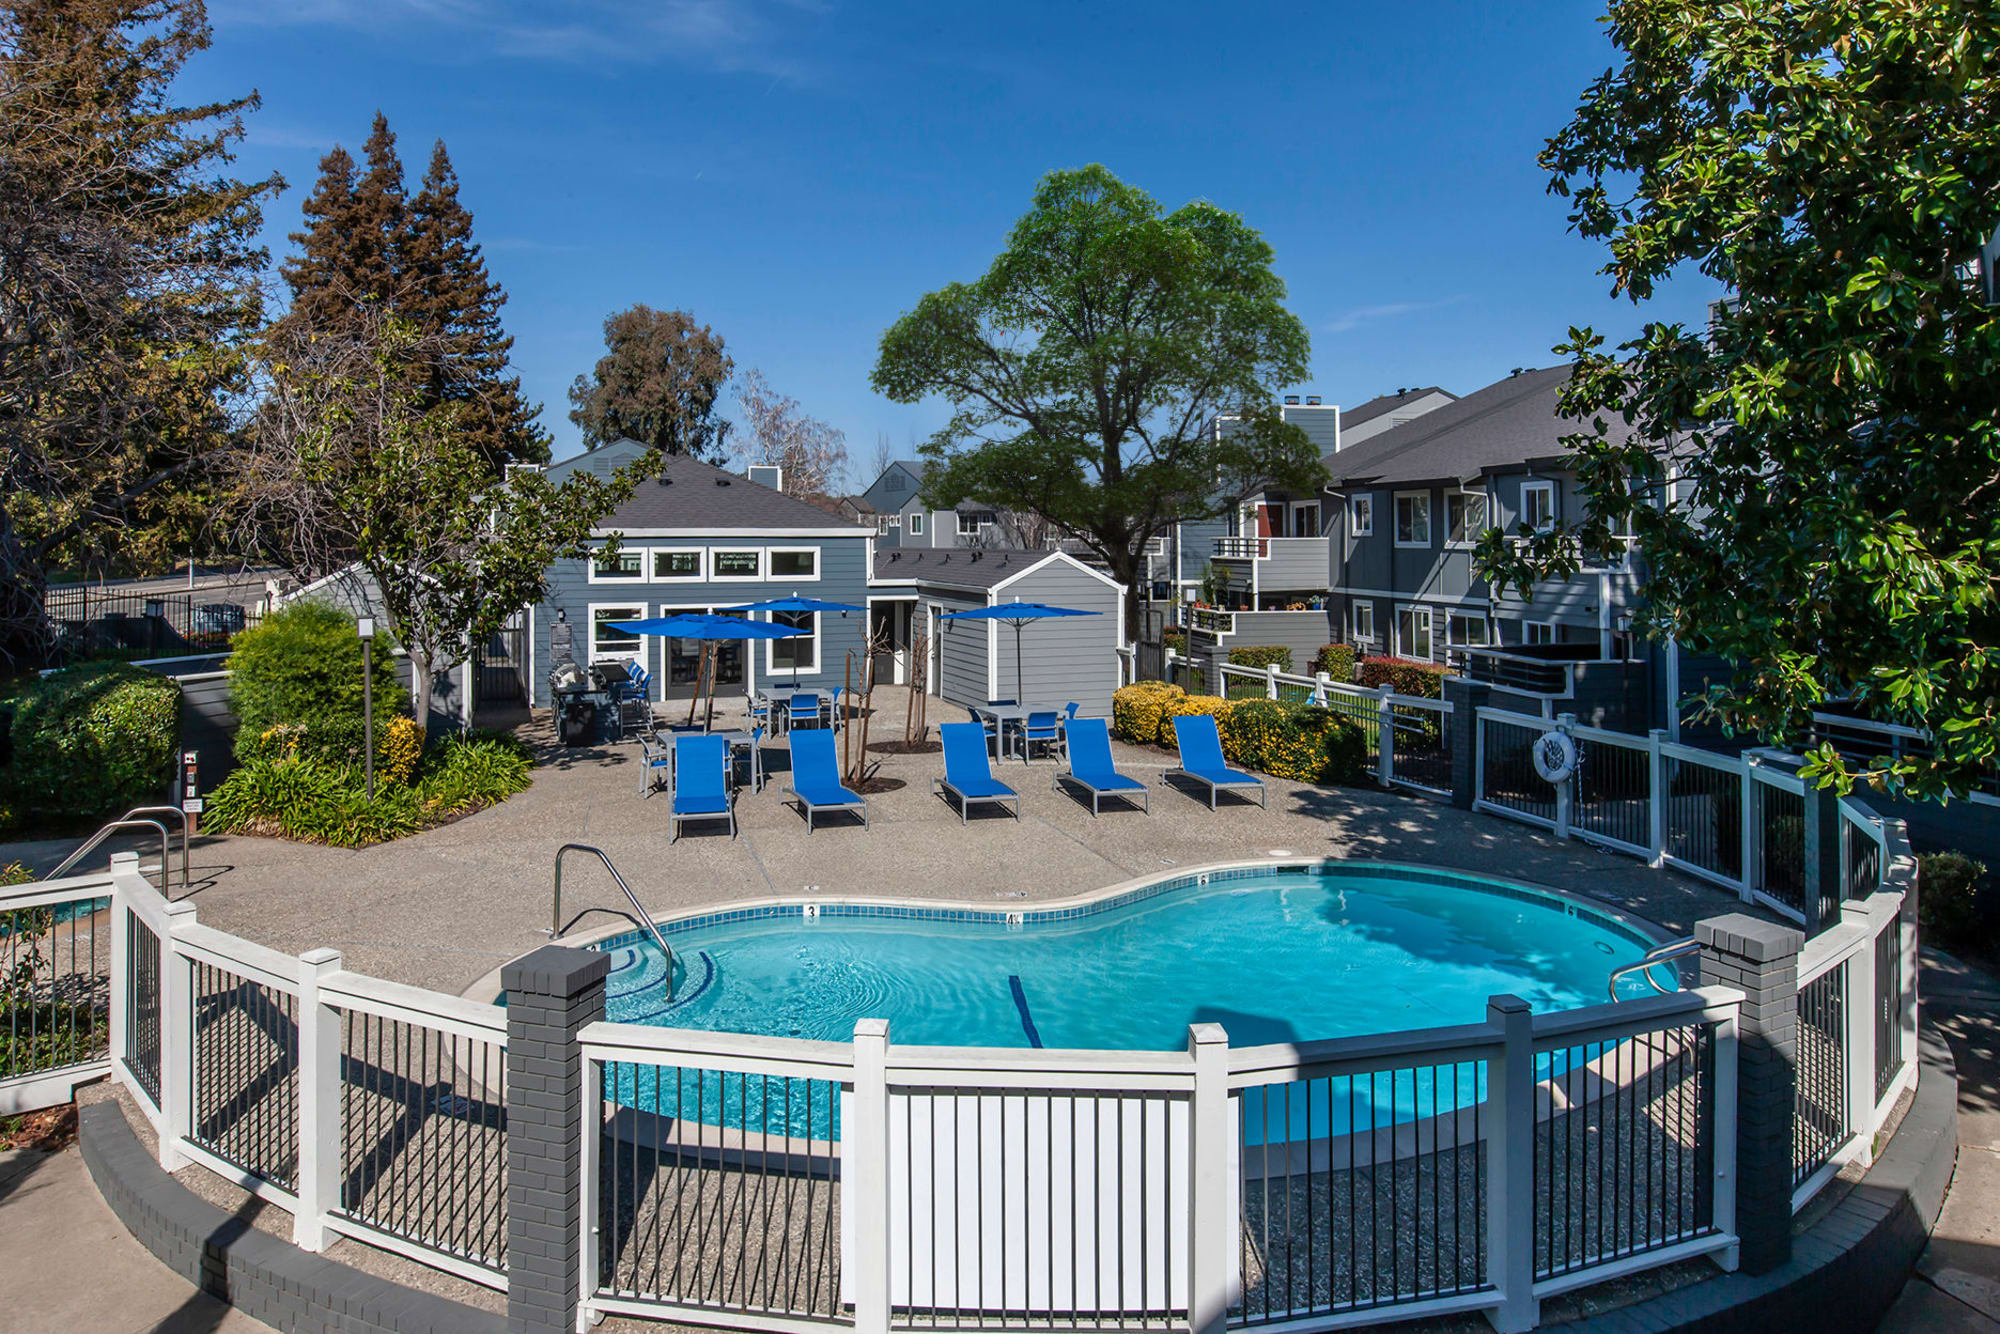 Pool and lounge chairs at Bennington Apartments in Fairfield, California